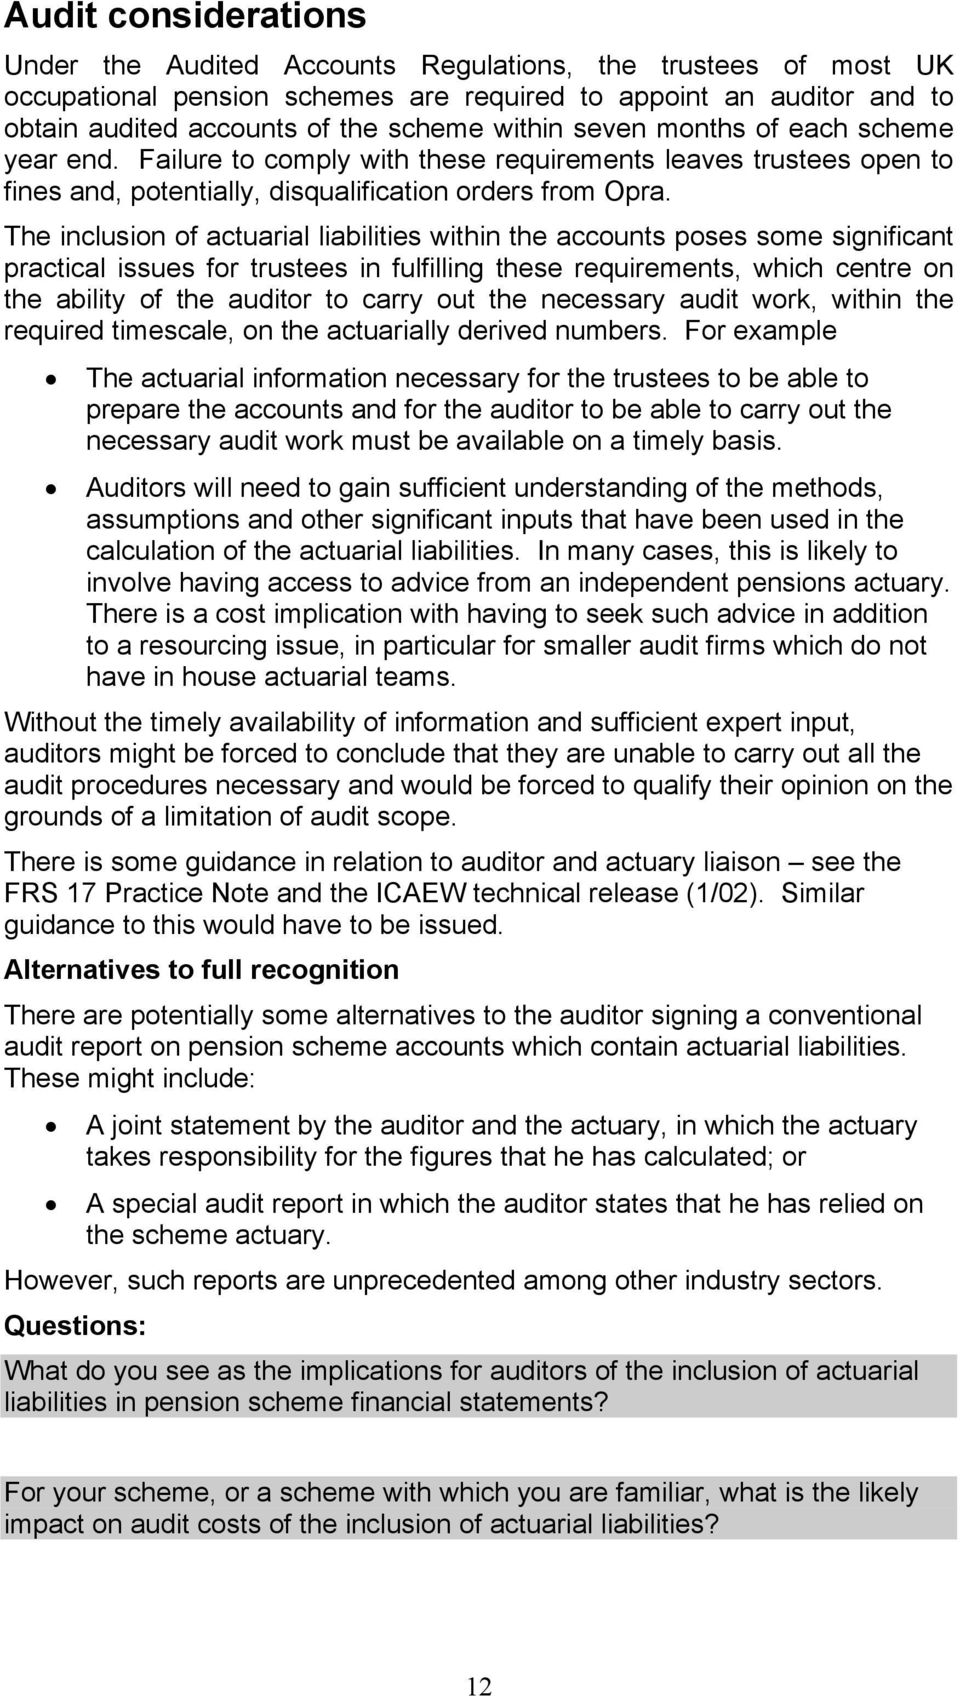 The inclusion of actuarial liabilities within the accounts poses some significant practical issues for trustees in fulfilling these requirements, which centre on the ability of the auditor to carry